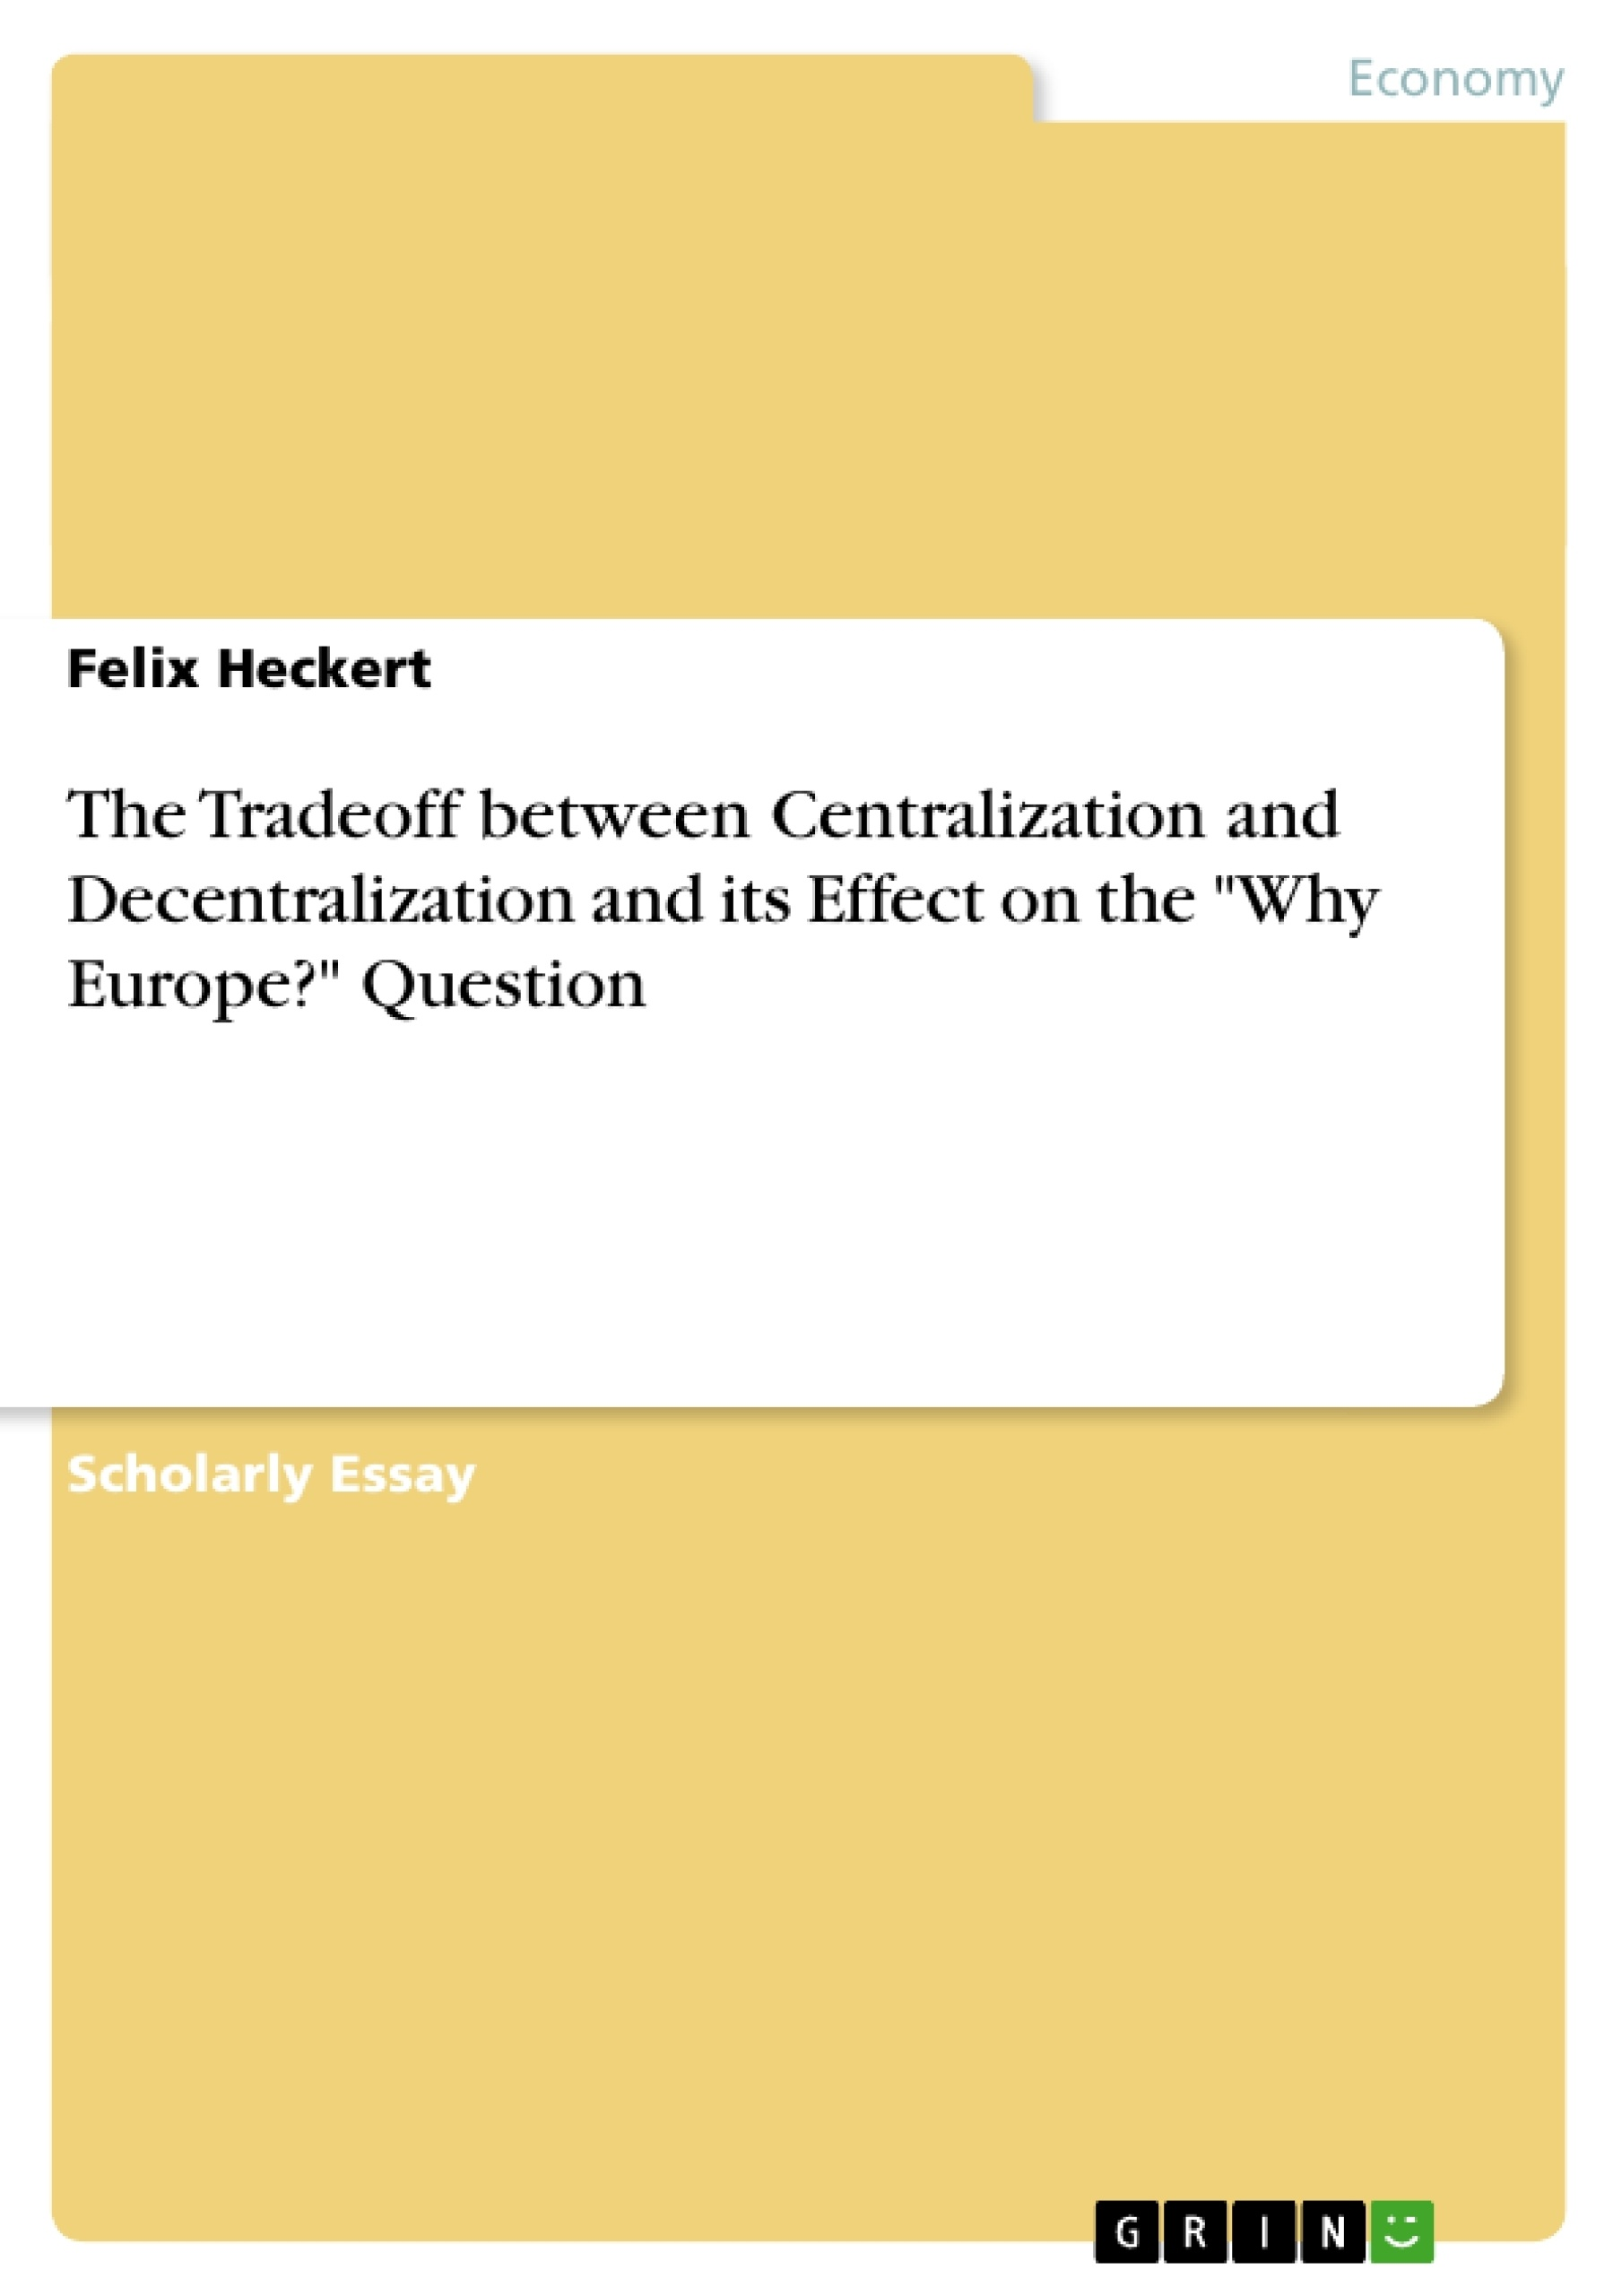 The Tradeoff between Centralization and Decentralization and its ...